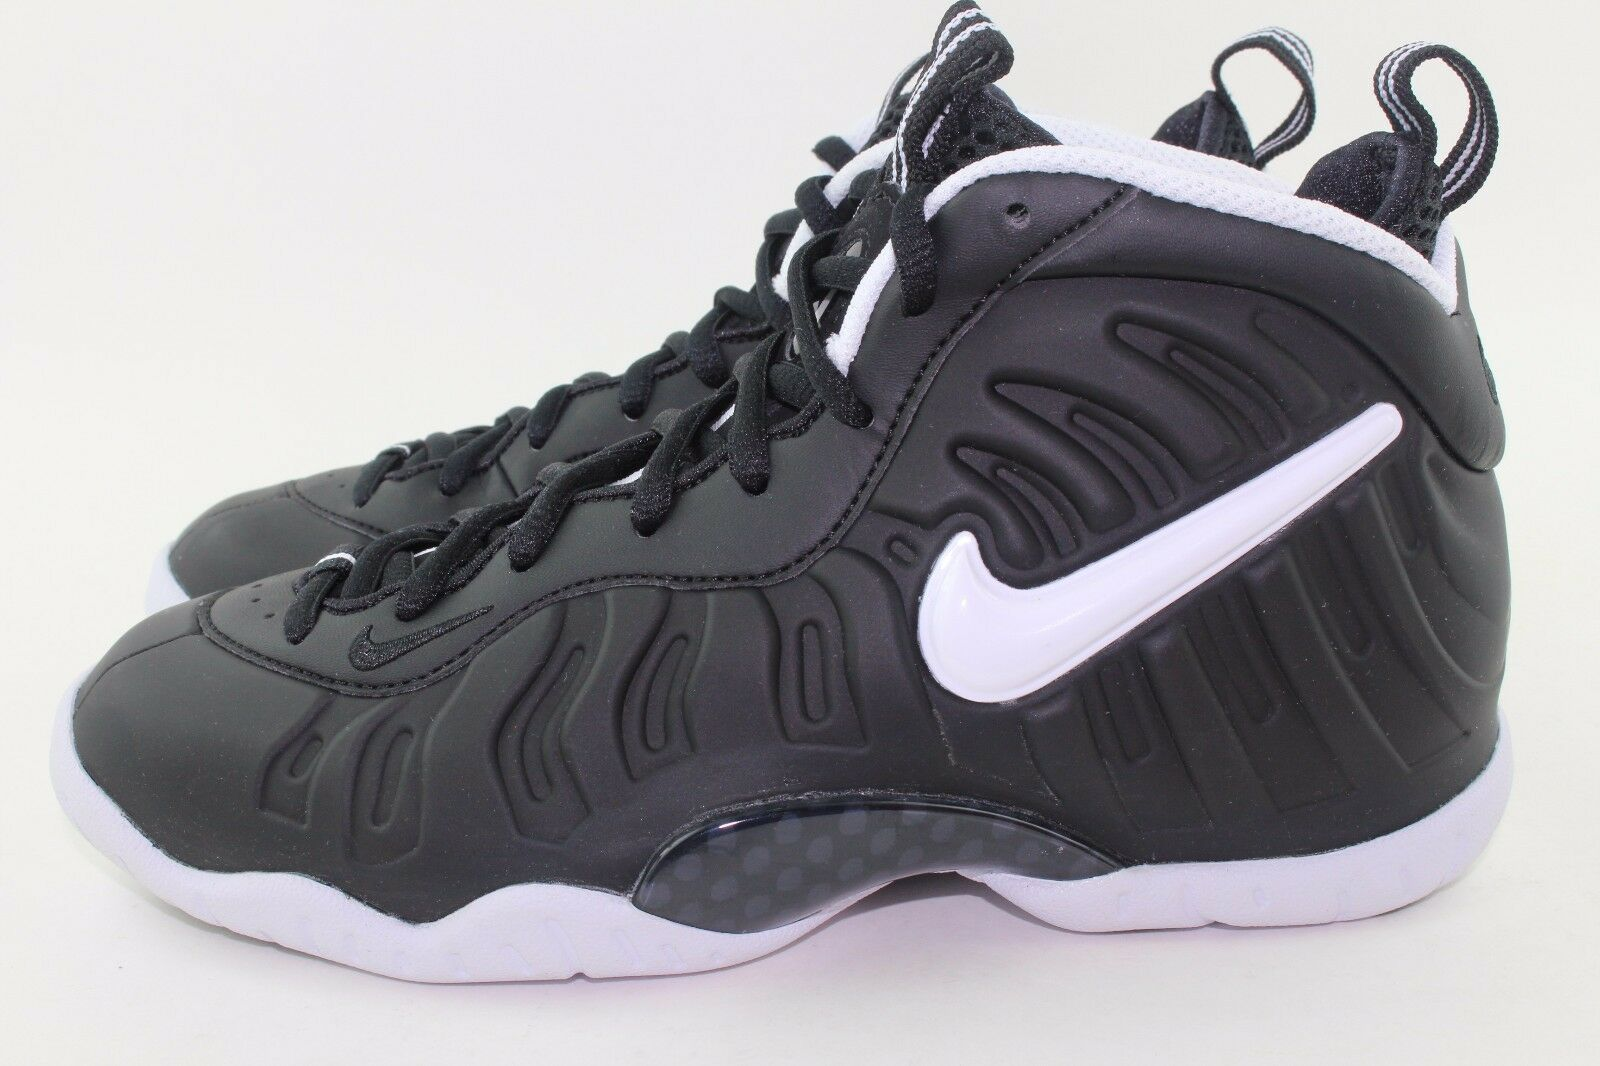 NIKE LITTLE POSITE PRO DR DOOM YOUTH SIZE 5.0 SAME AS WOMAN 6.5 NEW BLACK WHIT